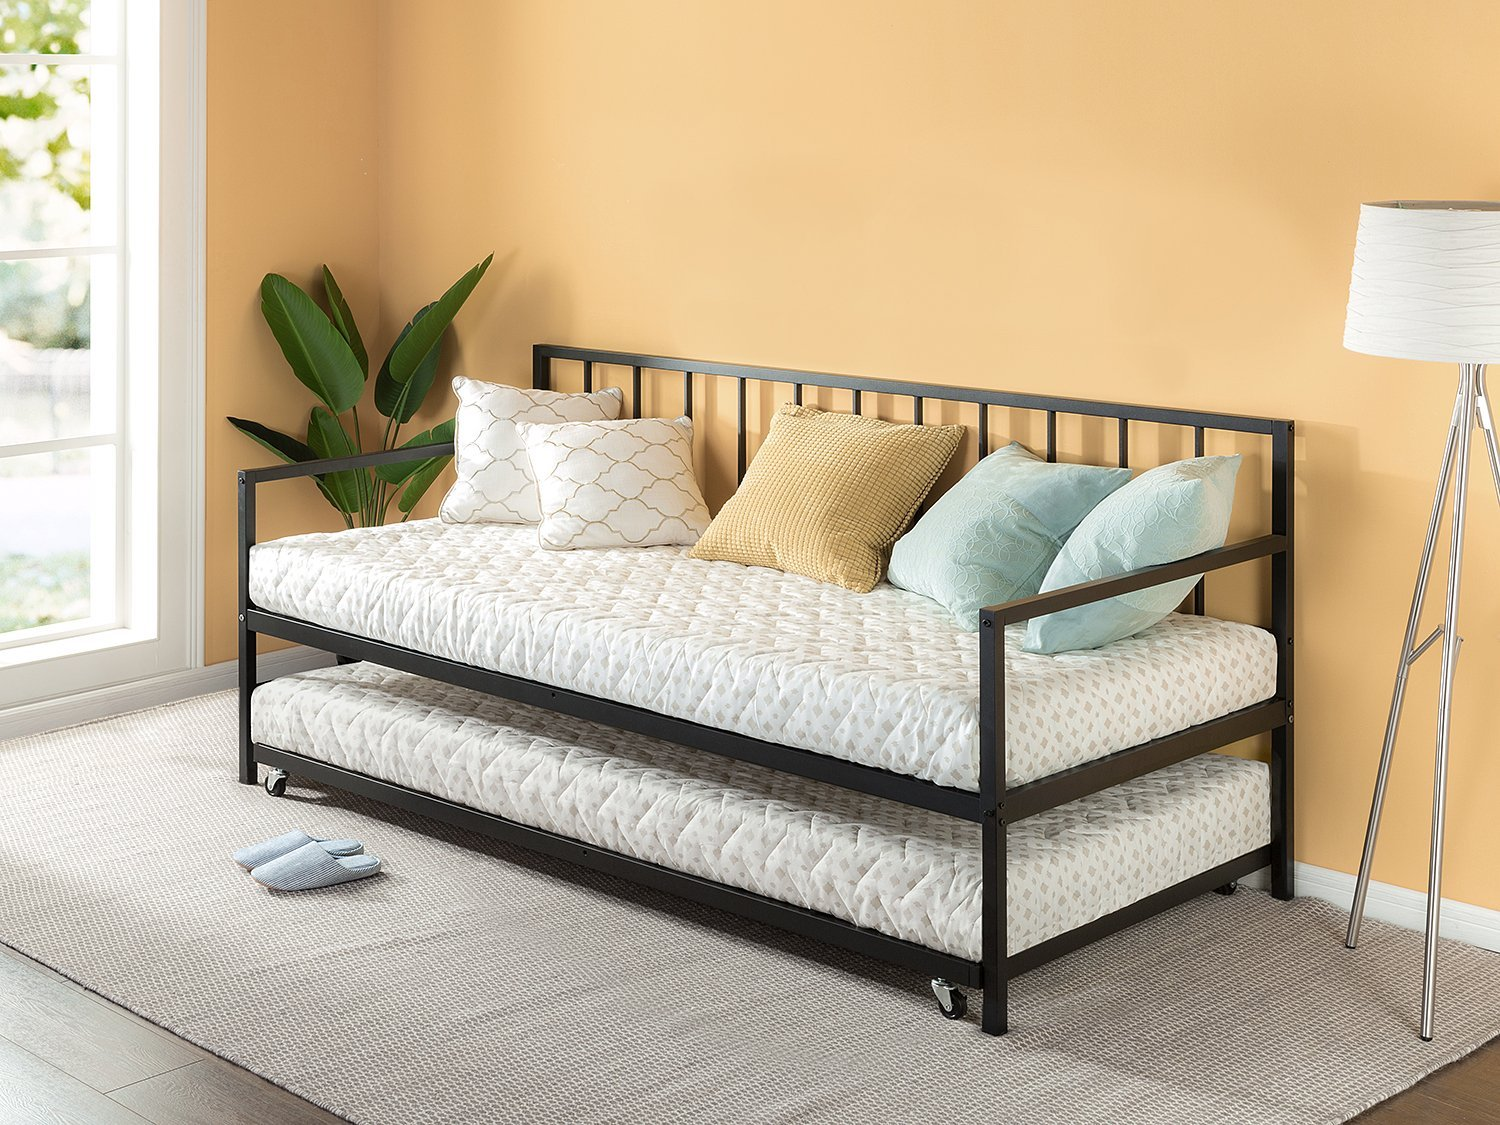 What Is A Trundle Bed?